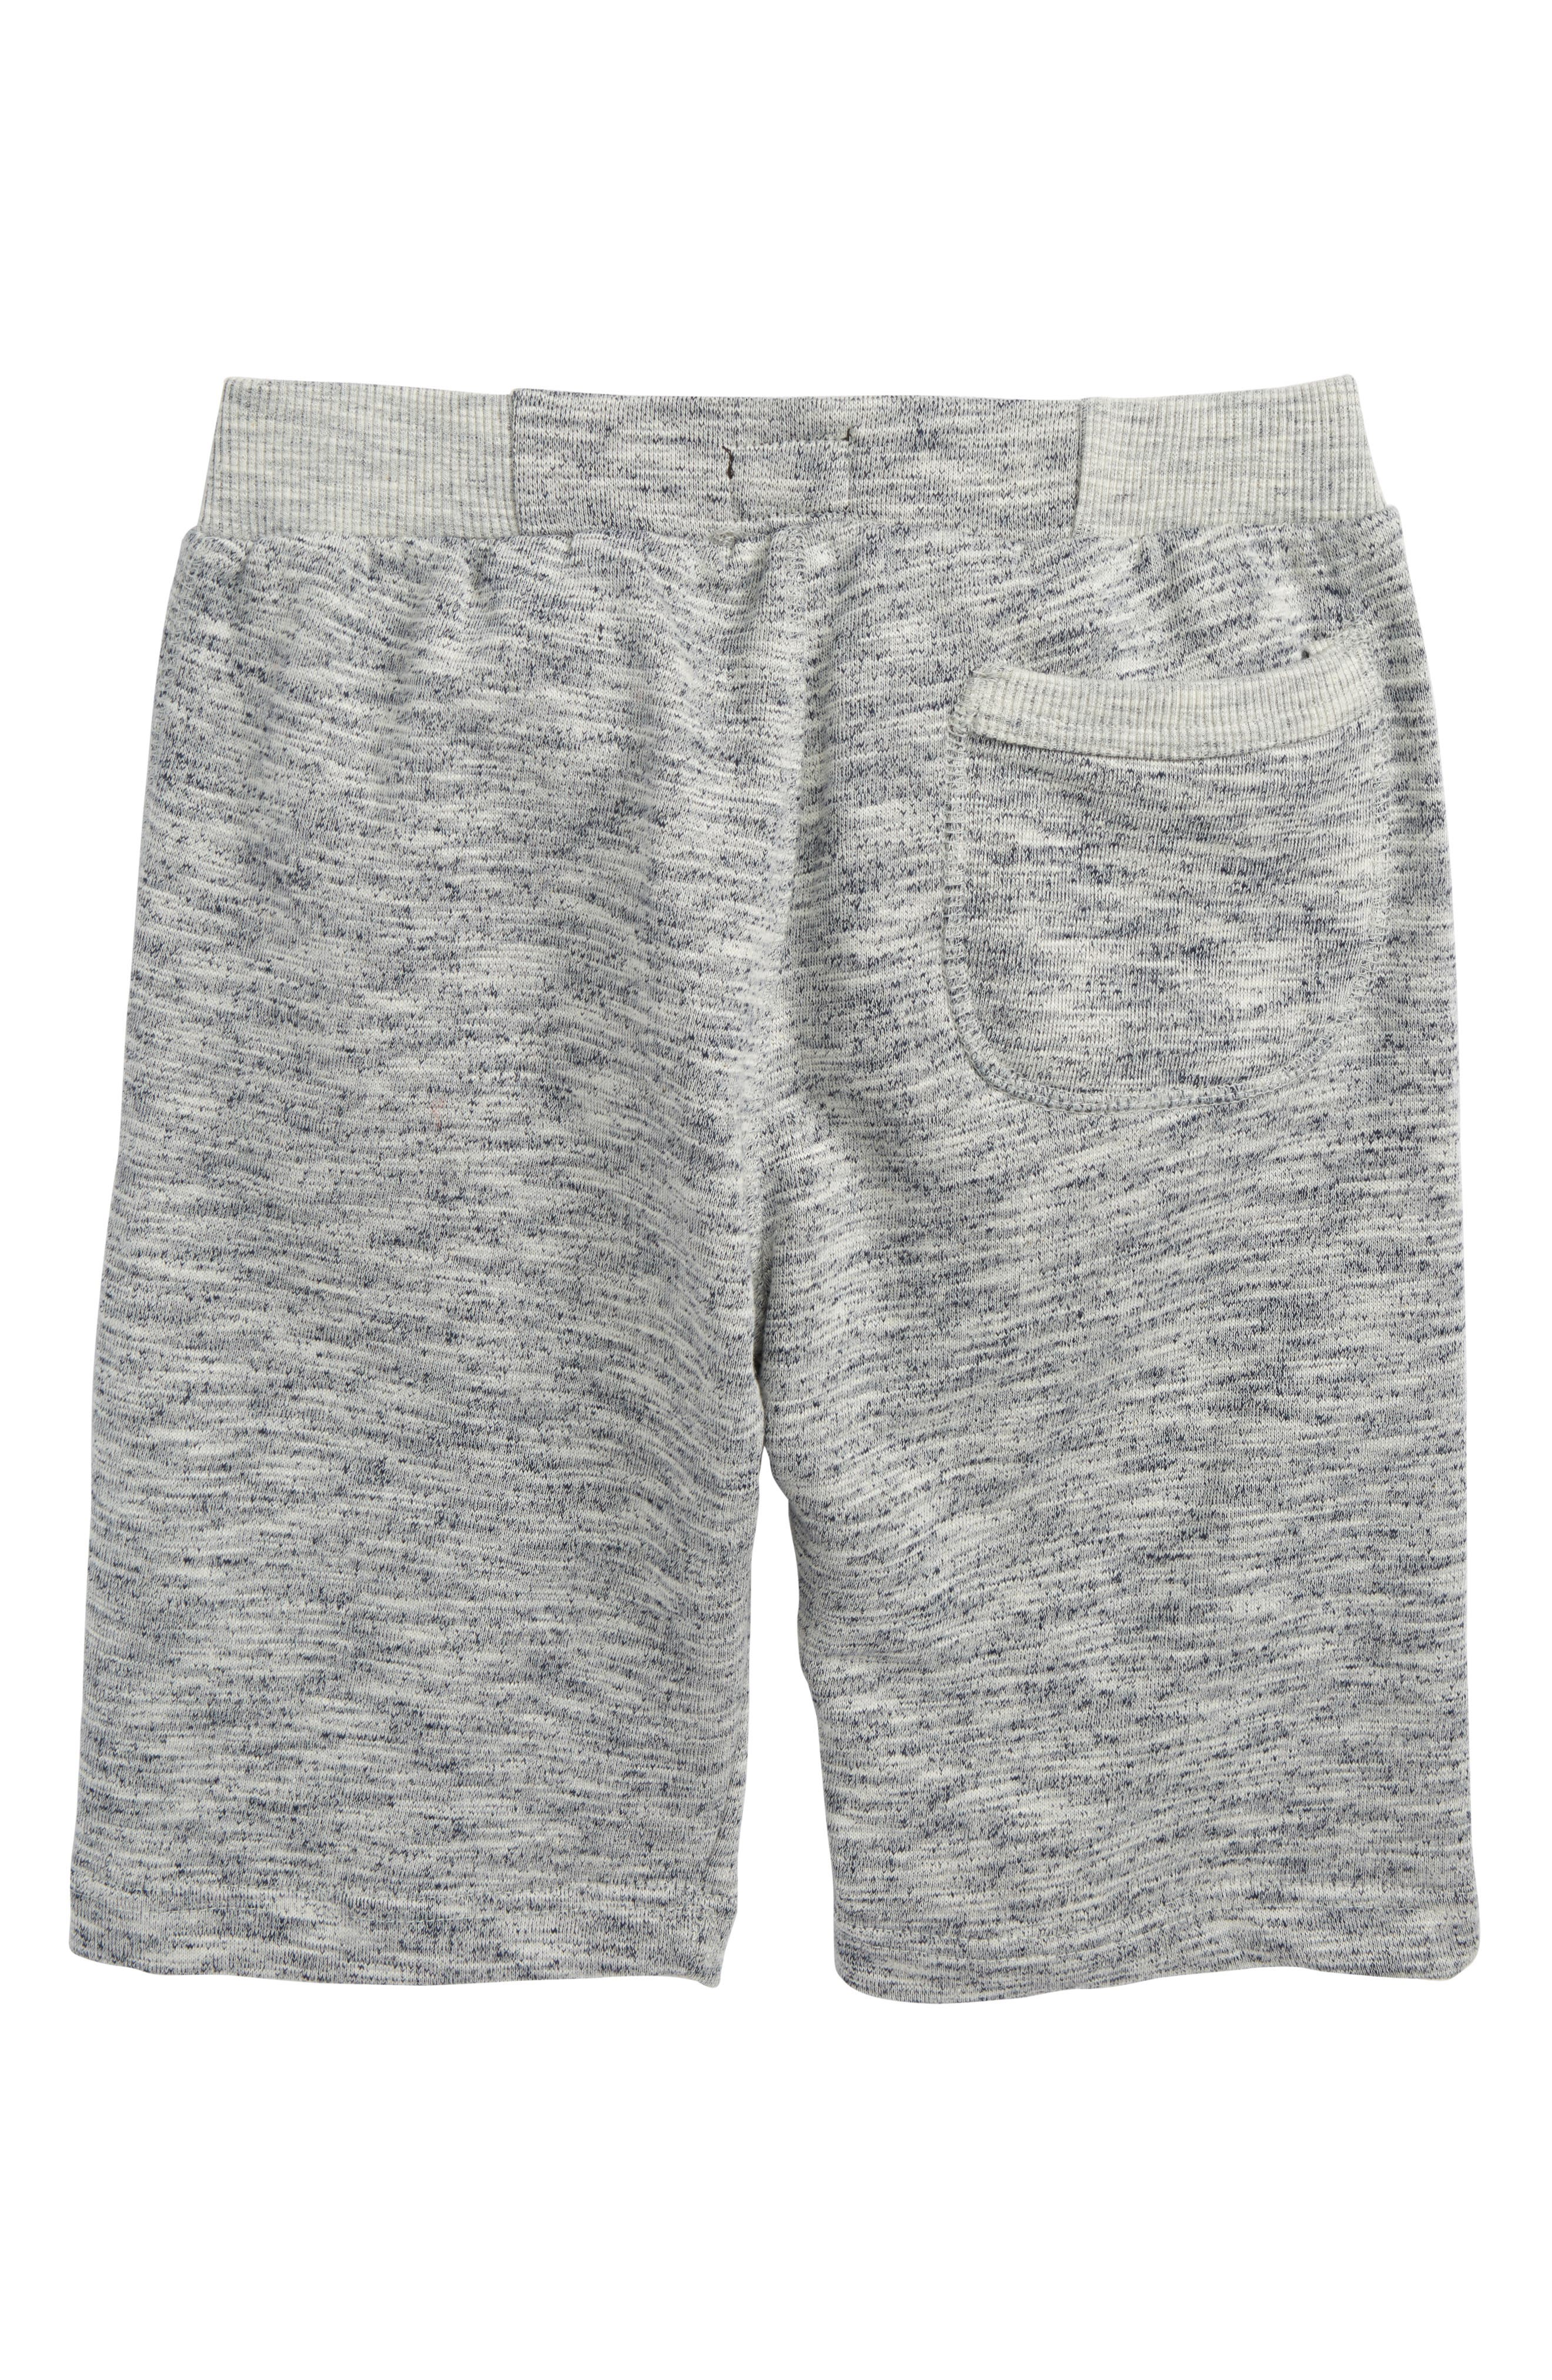 French Terry Shorts,                             Alternate thumbnail 2, color,                             093